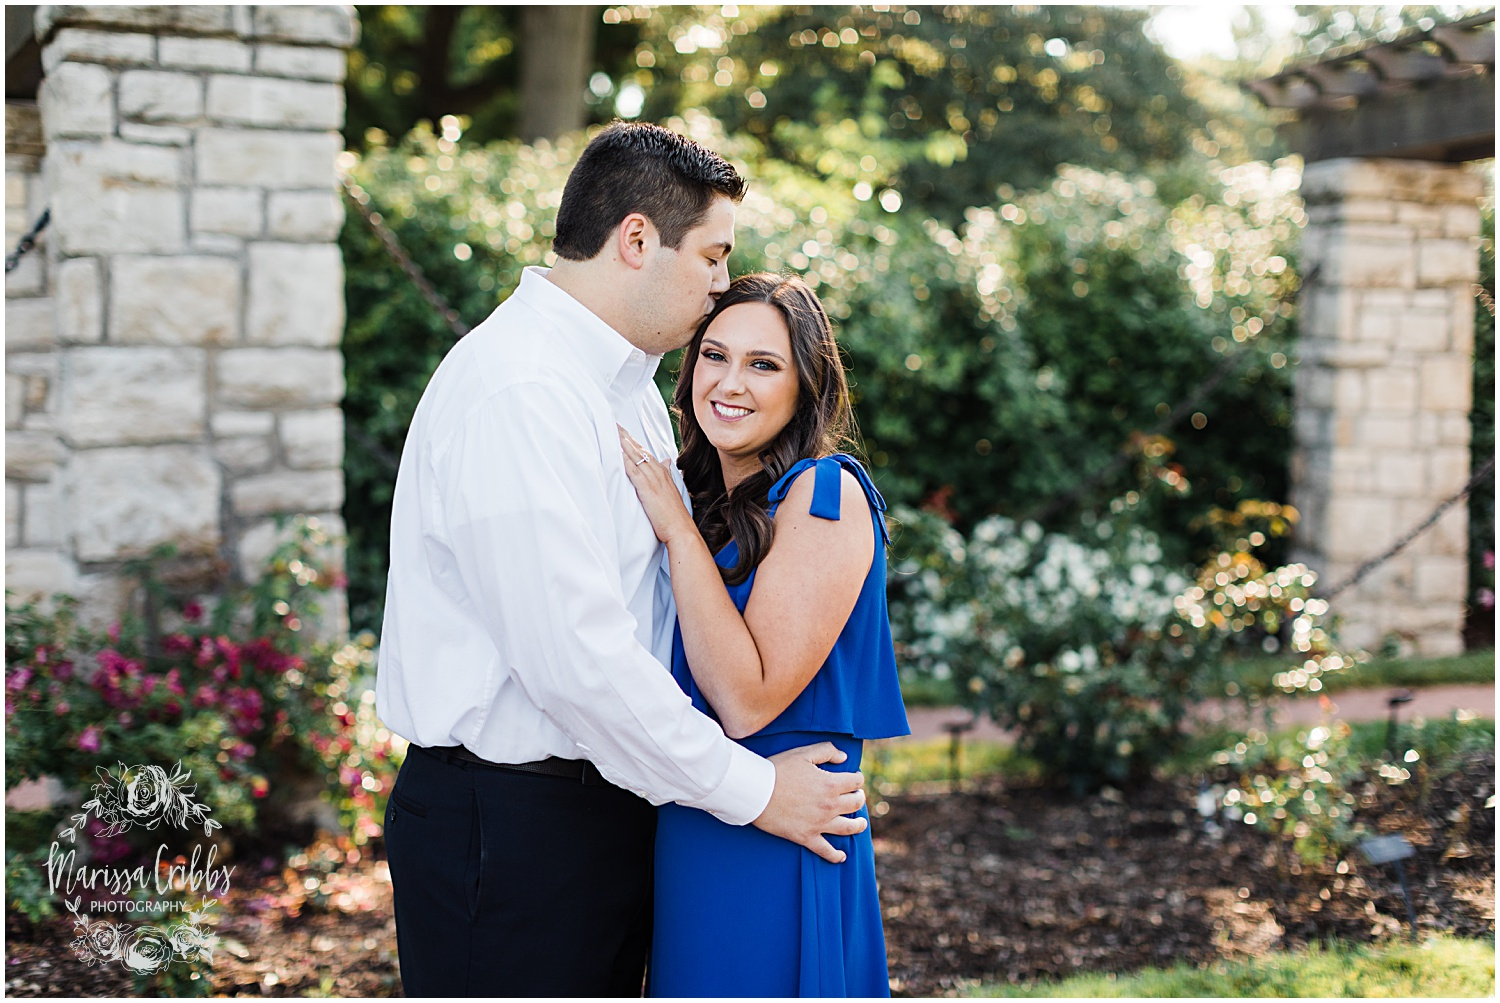 MORGAN & KEVIN ENGAGEMENT BLOG | MARISSA CRIBBS PHOTOGRAPHY_8265.jpg